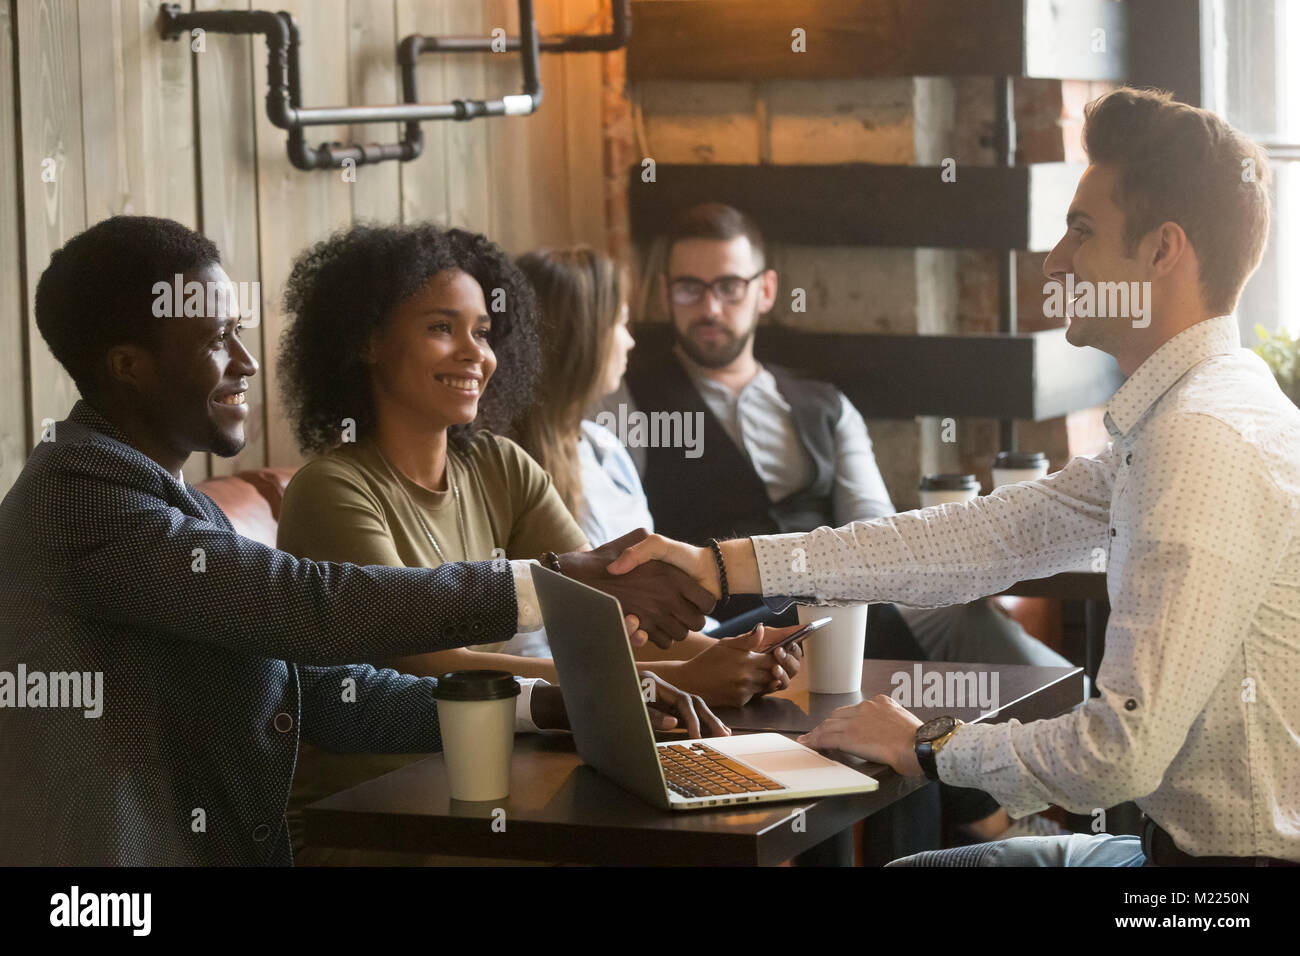 Multiracial african and caucasian men handshaking at meeting in  - Stock Image